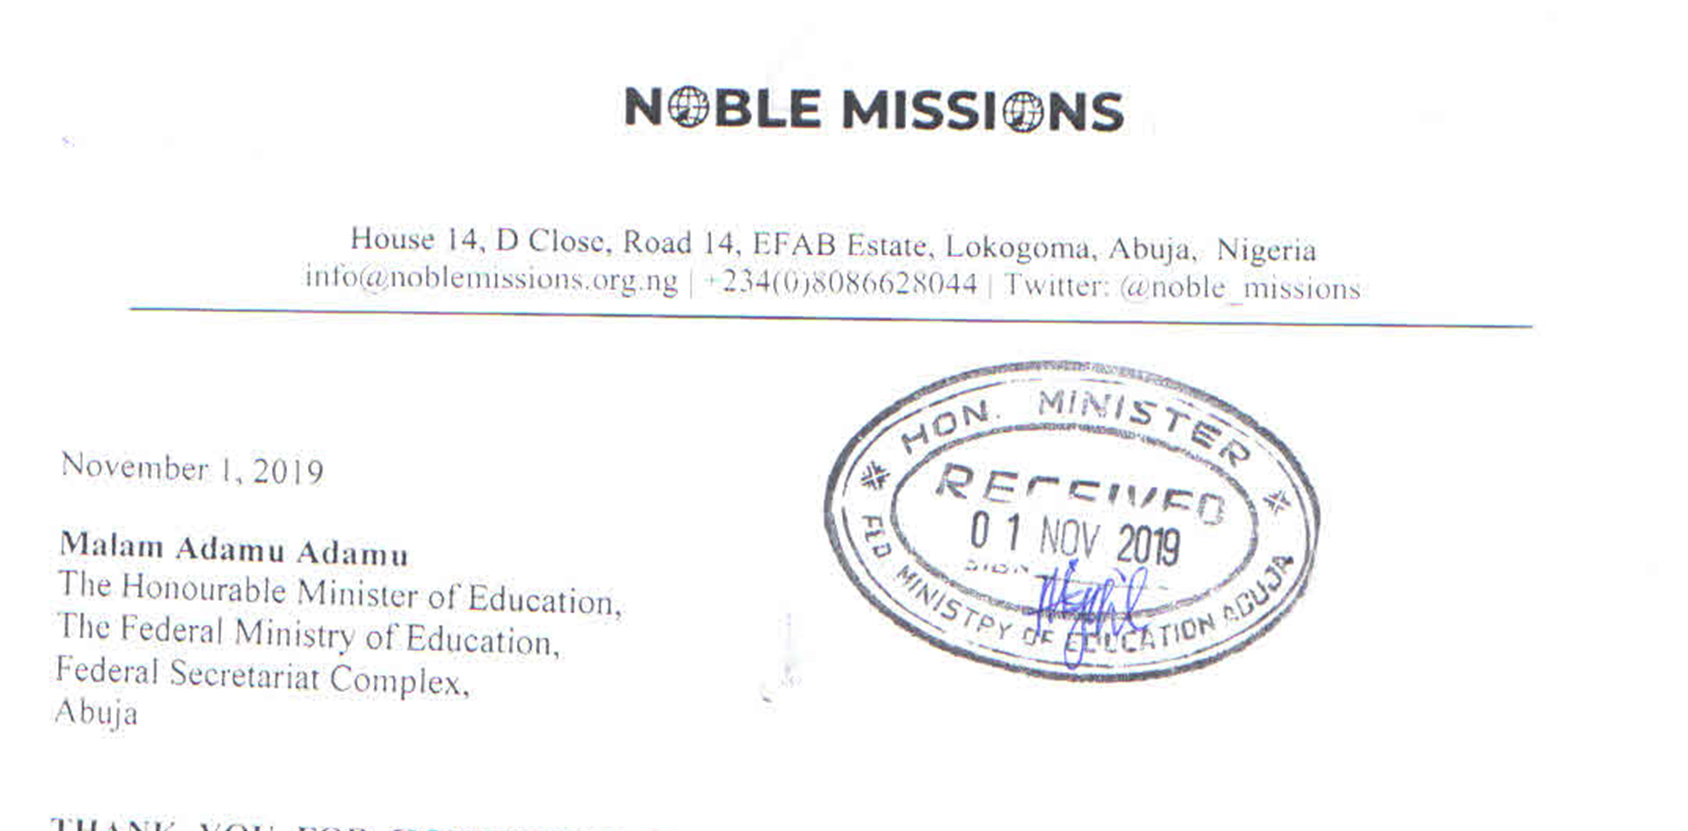 How we empowered some citizens to make recommendations to the Honourable Minister of Education in Nigeria